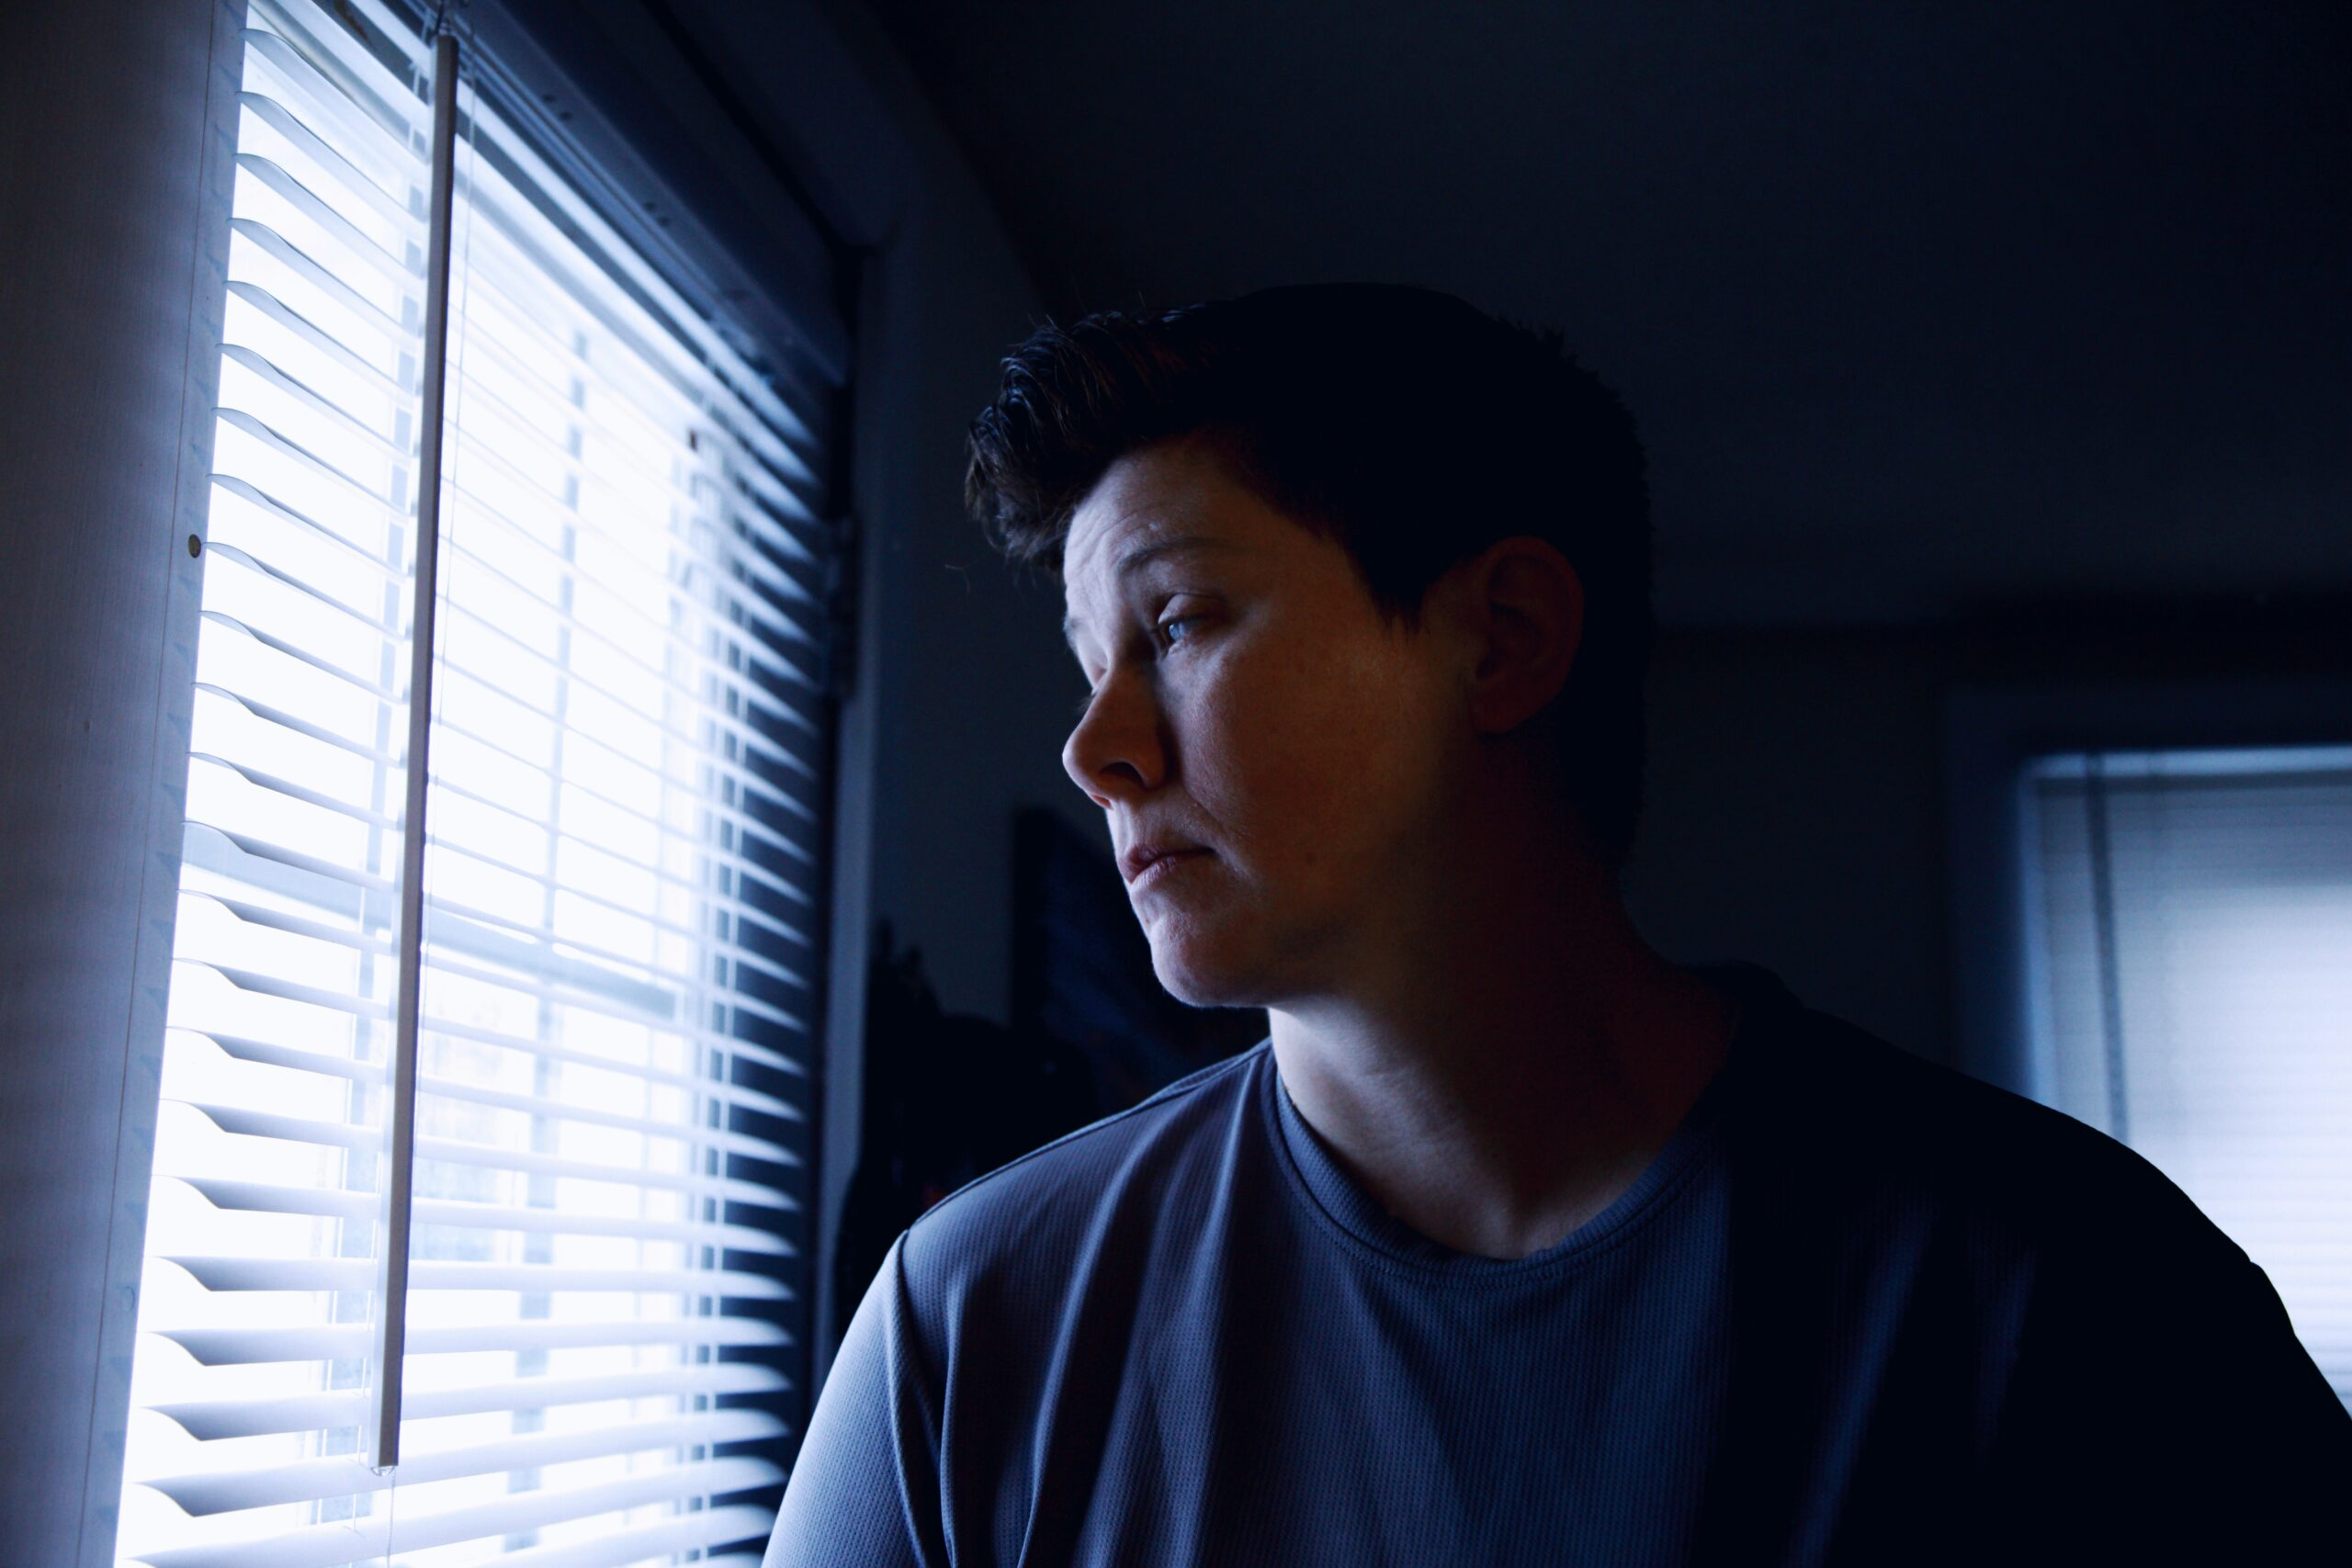 Unhappy man looking out a window wondering how he can escape his miserable marriage.